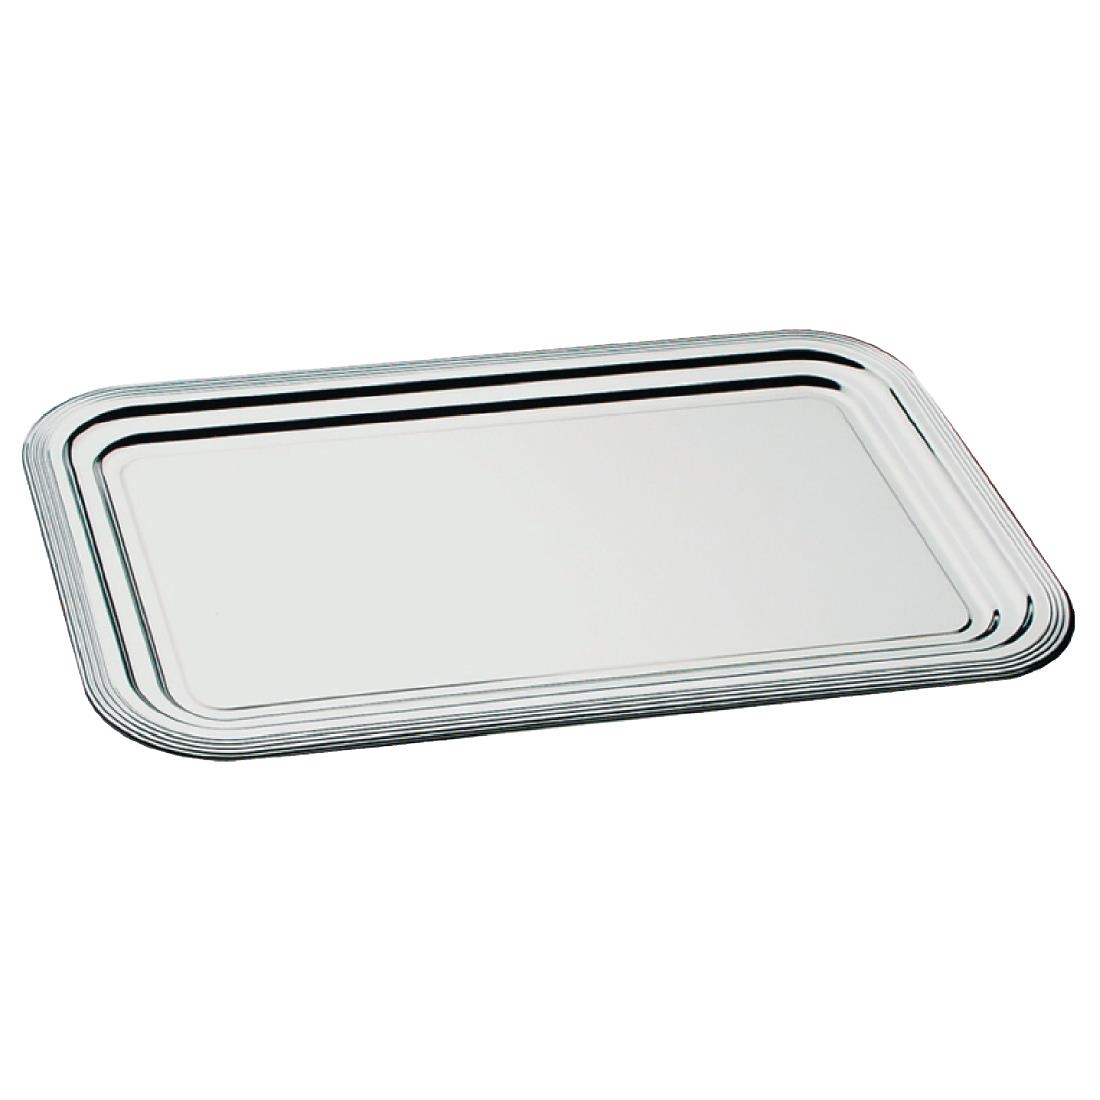 Image of APS Semi-Disposable Party Tray GN 1/1 Chrome